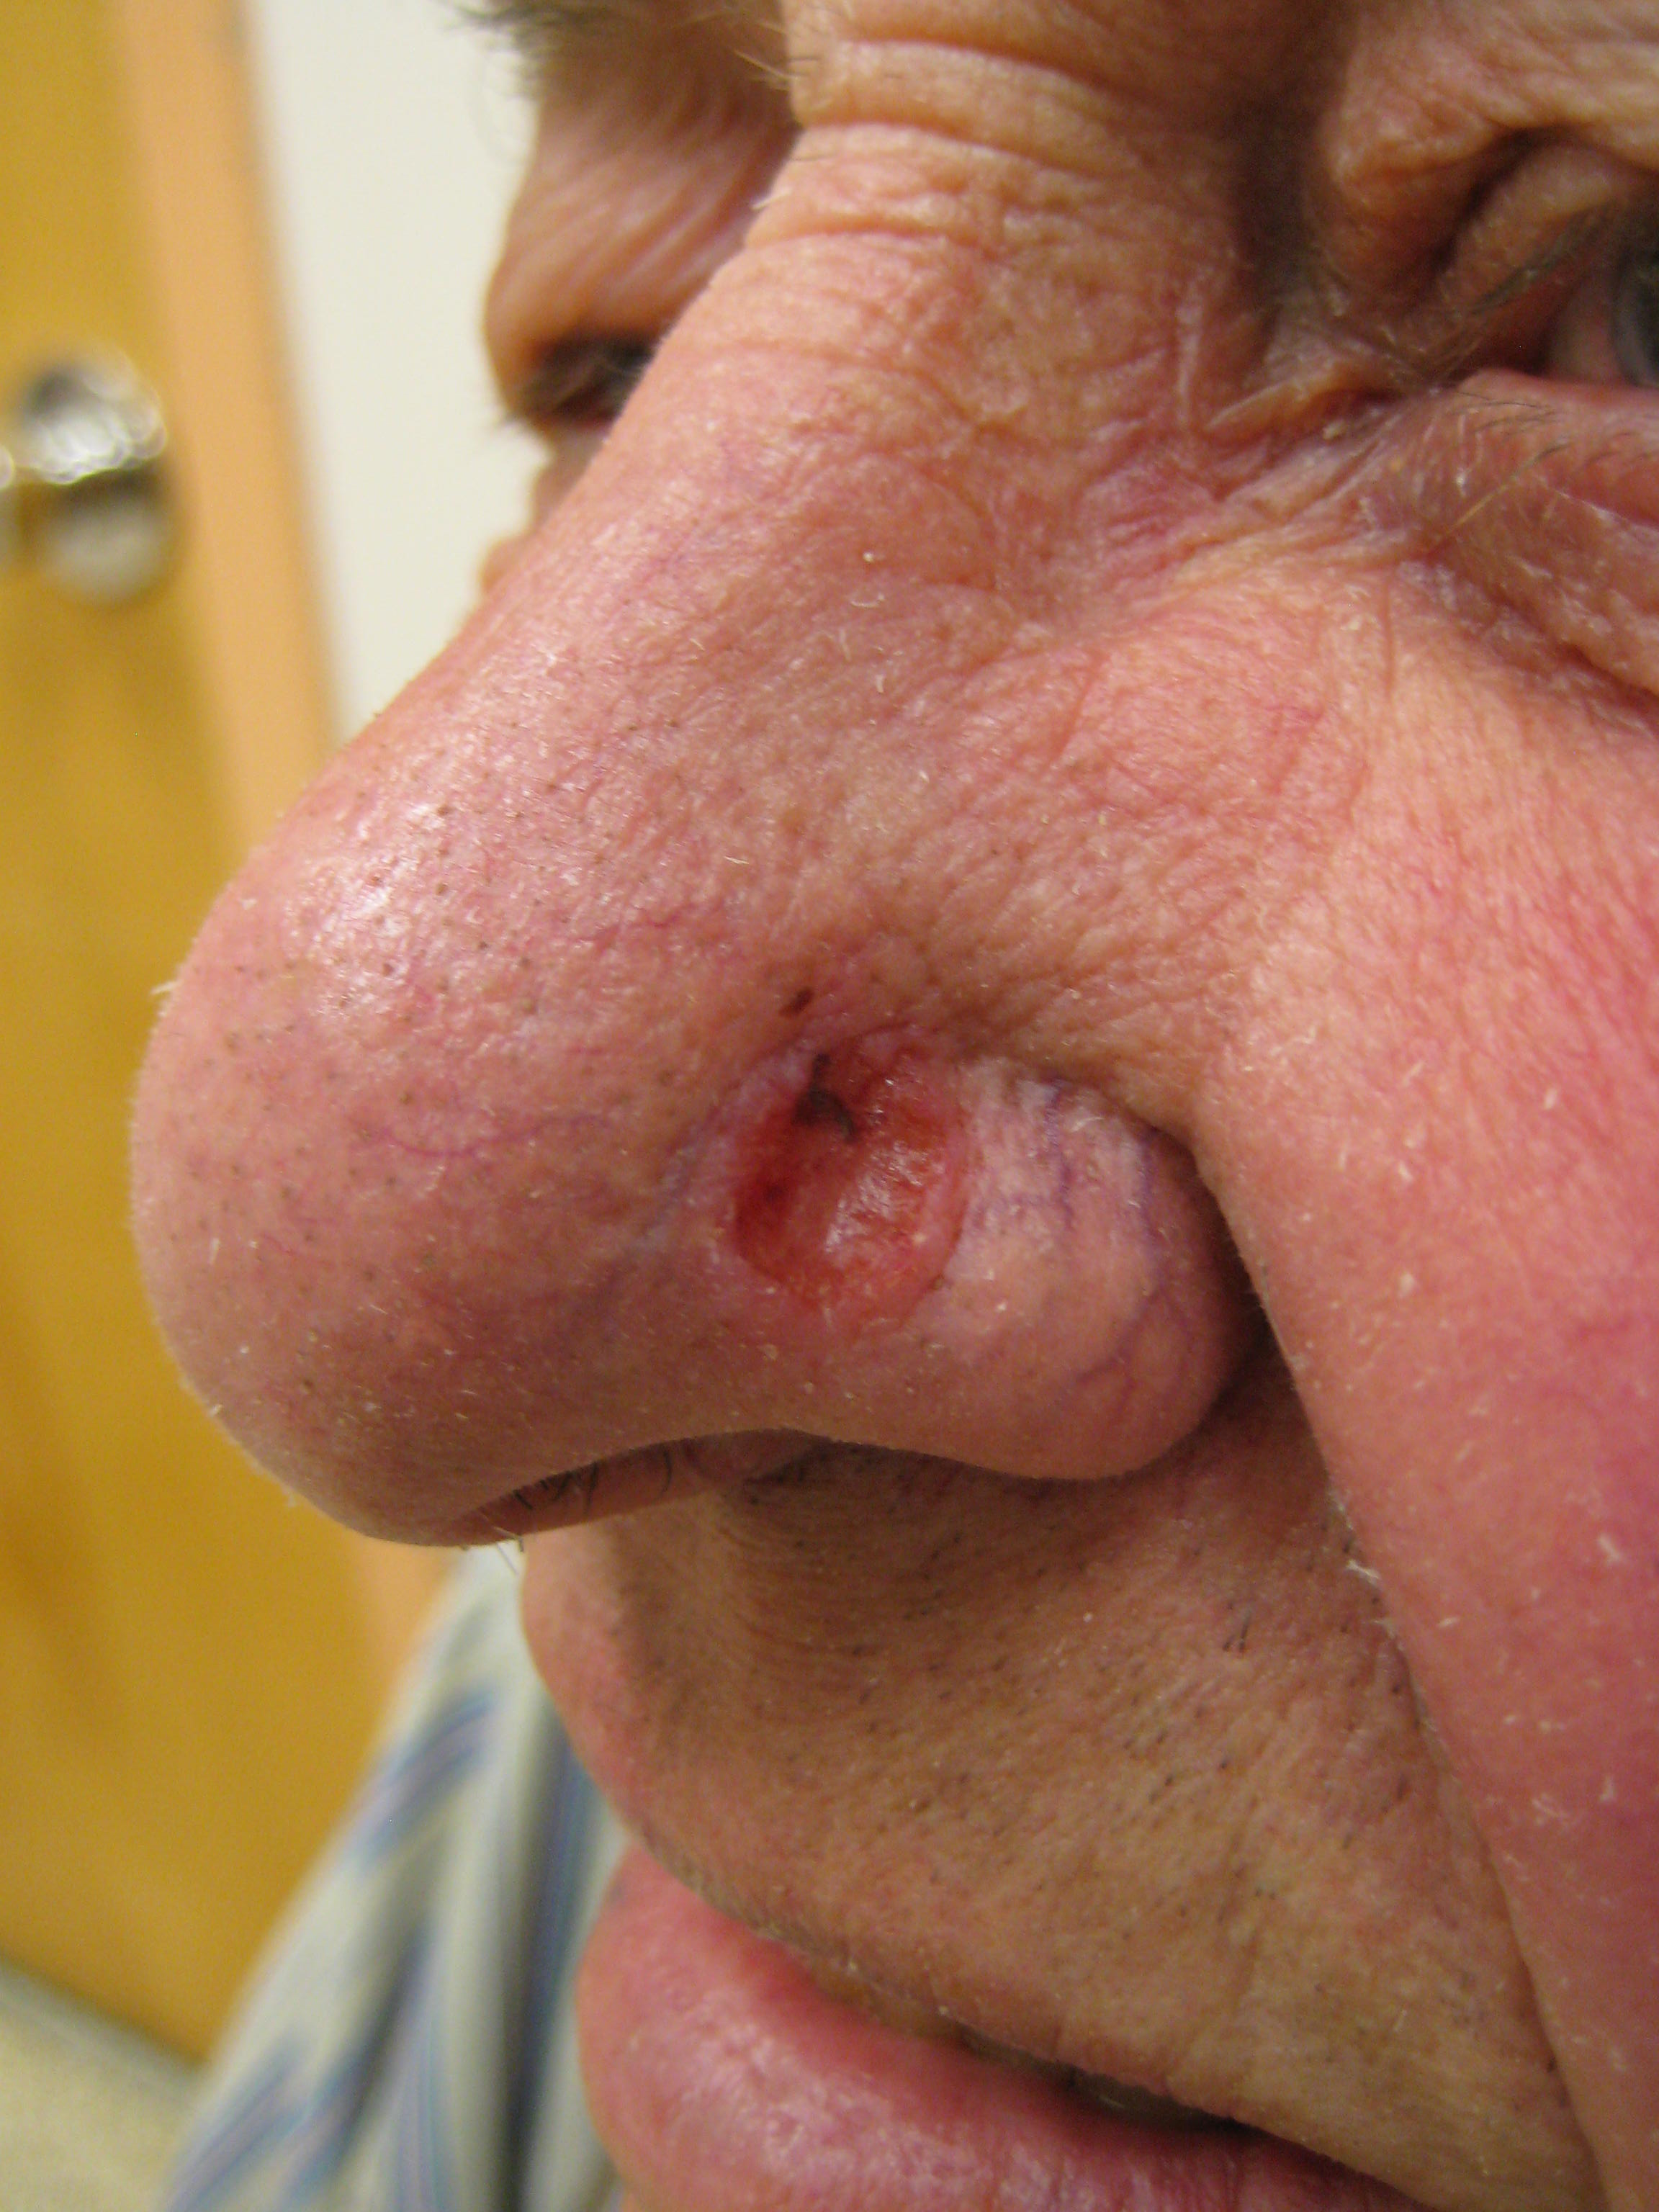 squamous papilloma in the mouth